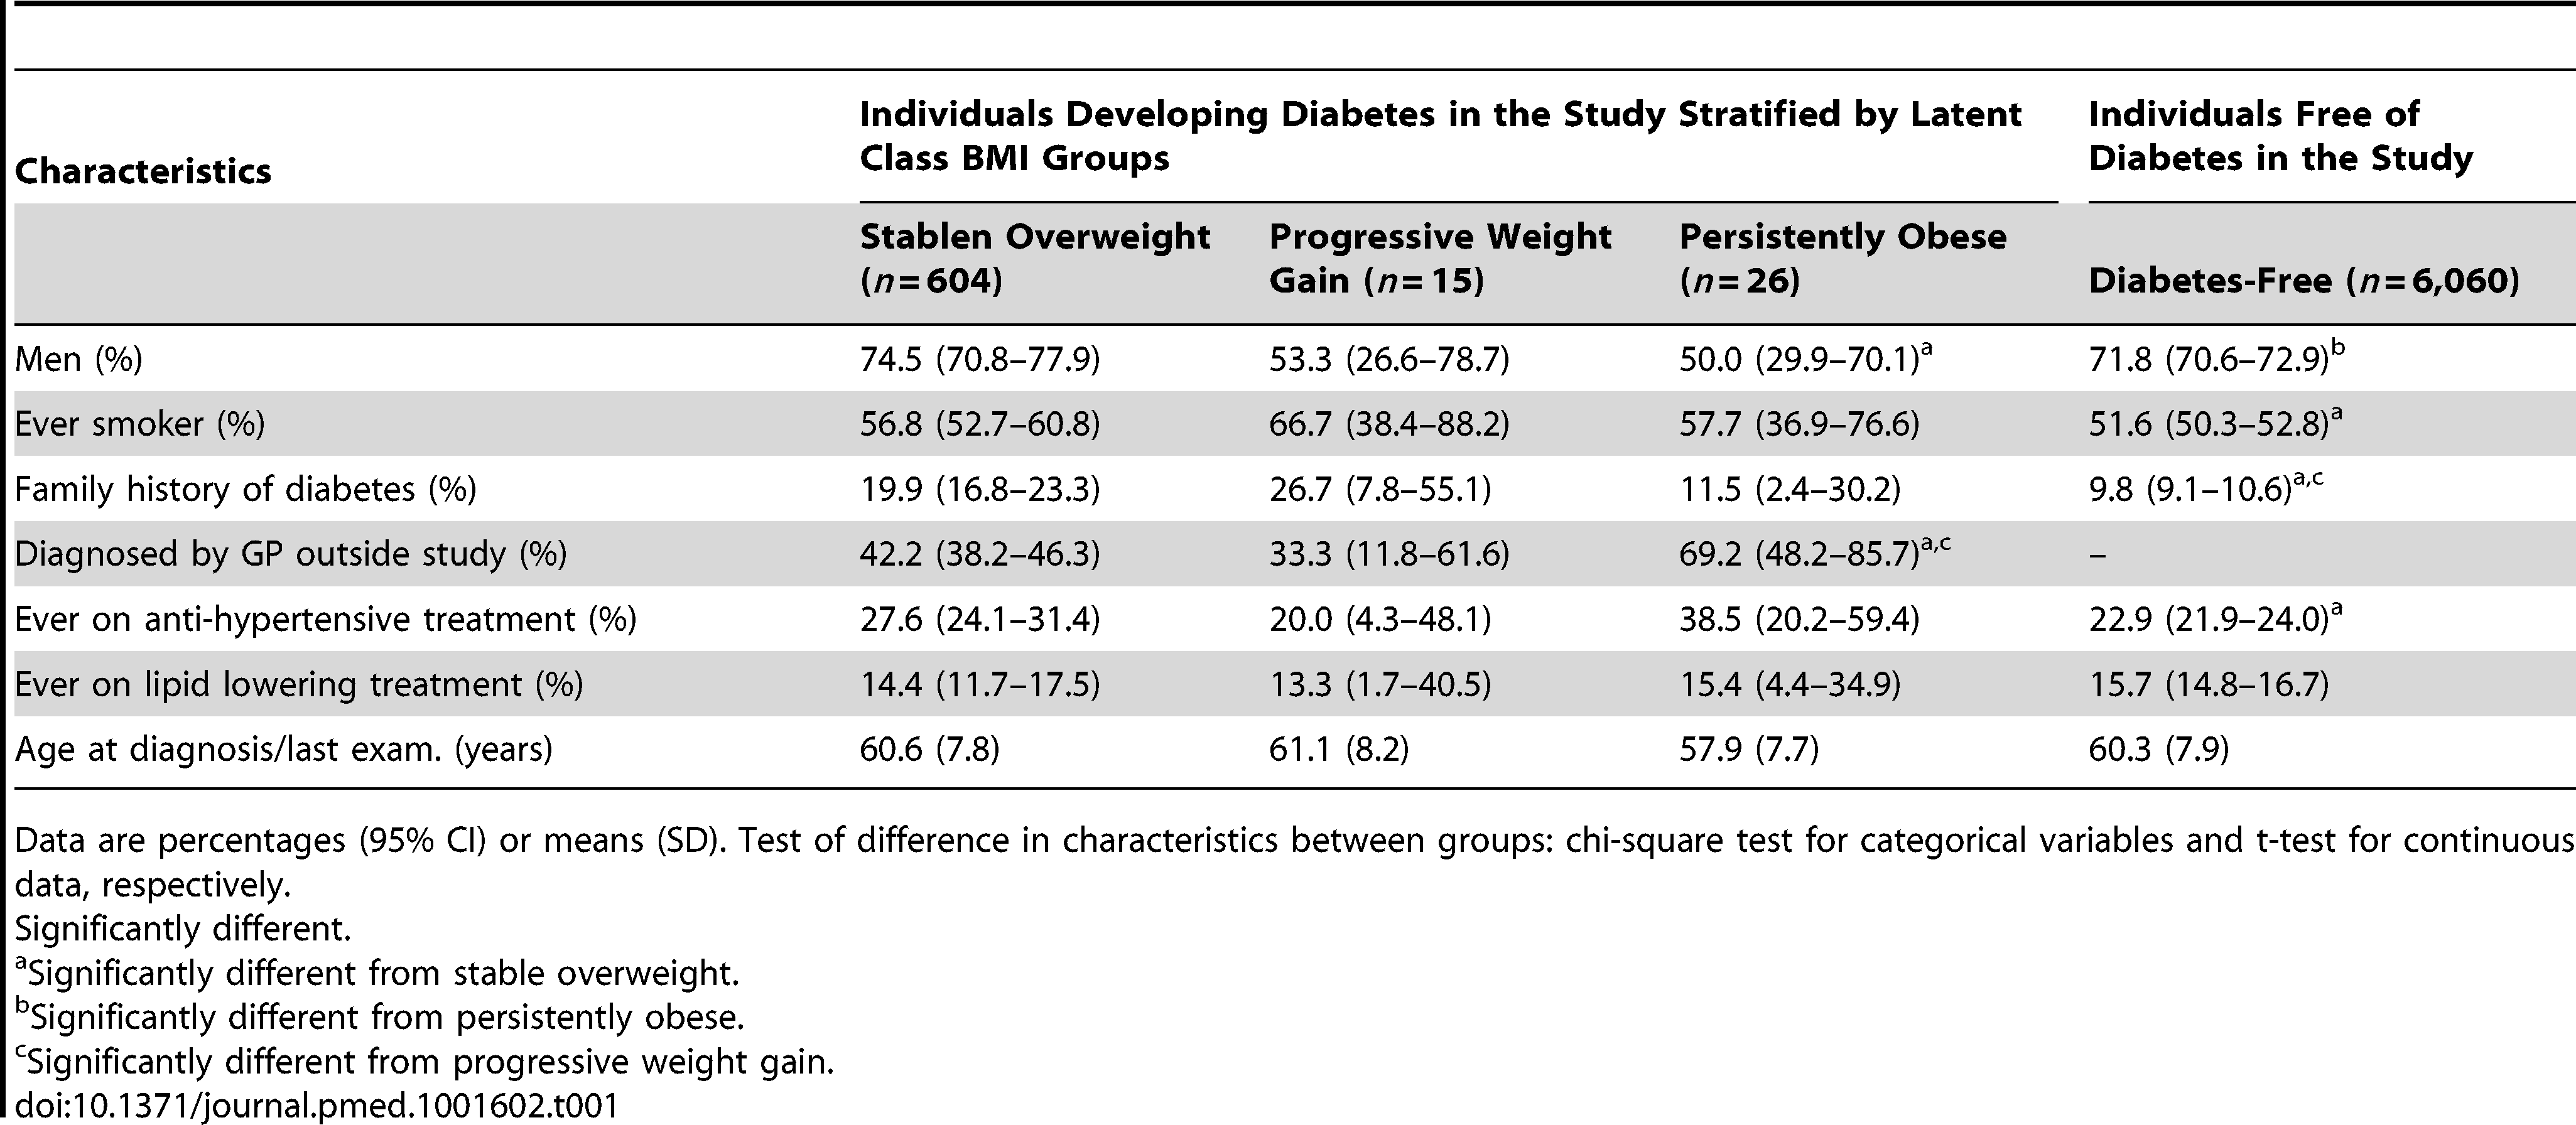 <b>Characteristics of study participants at time of diagnosis for the three diabetes groups or at the last clinical examination for the diabetes-free group.</b>